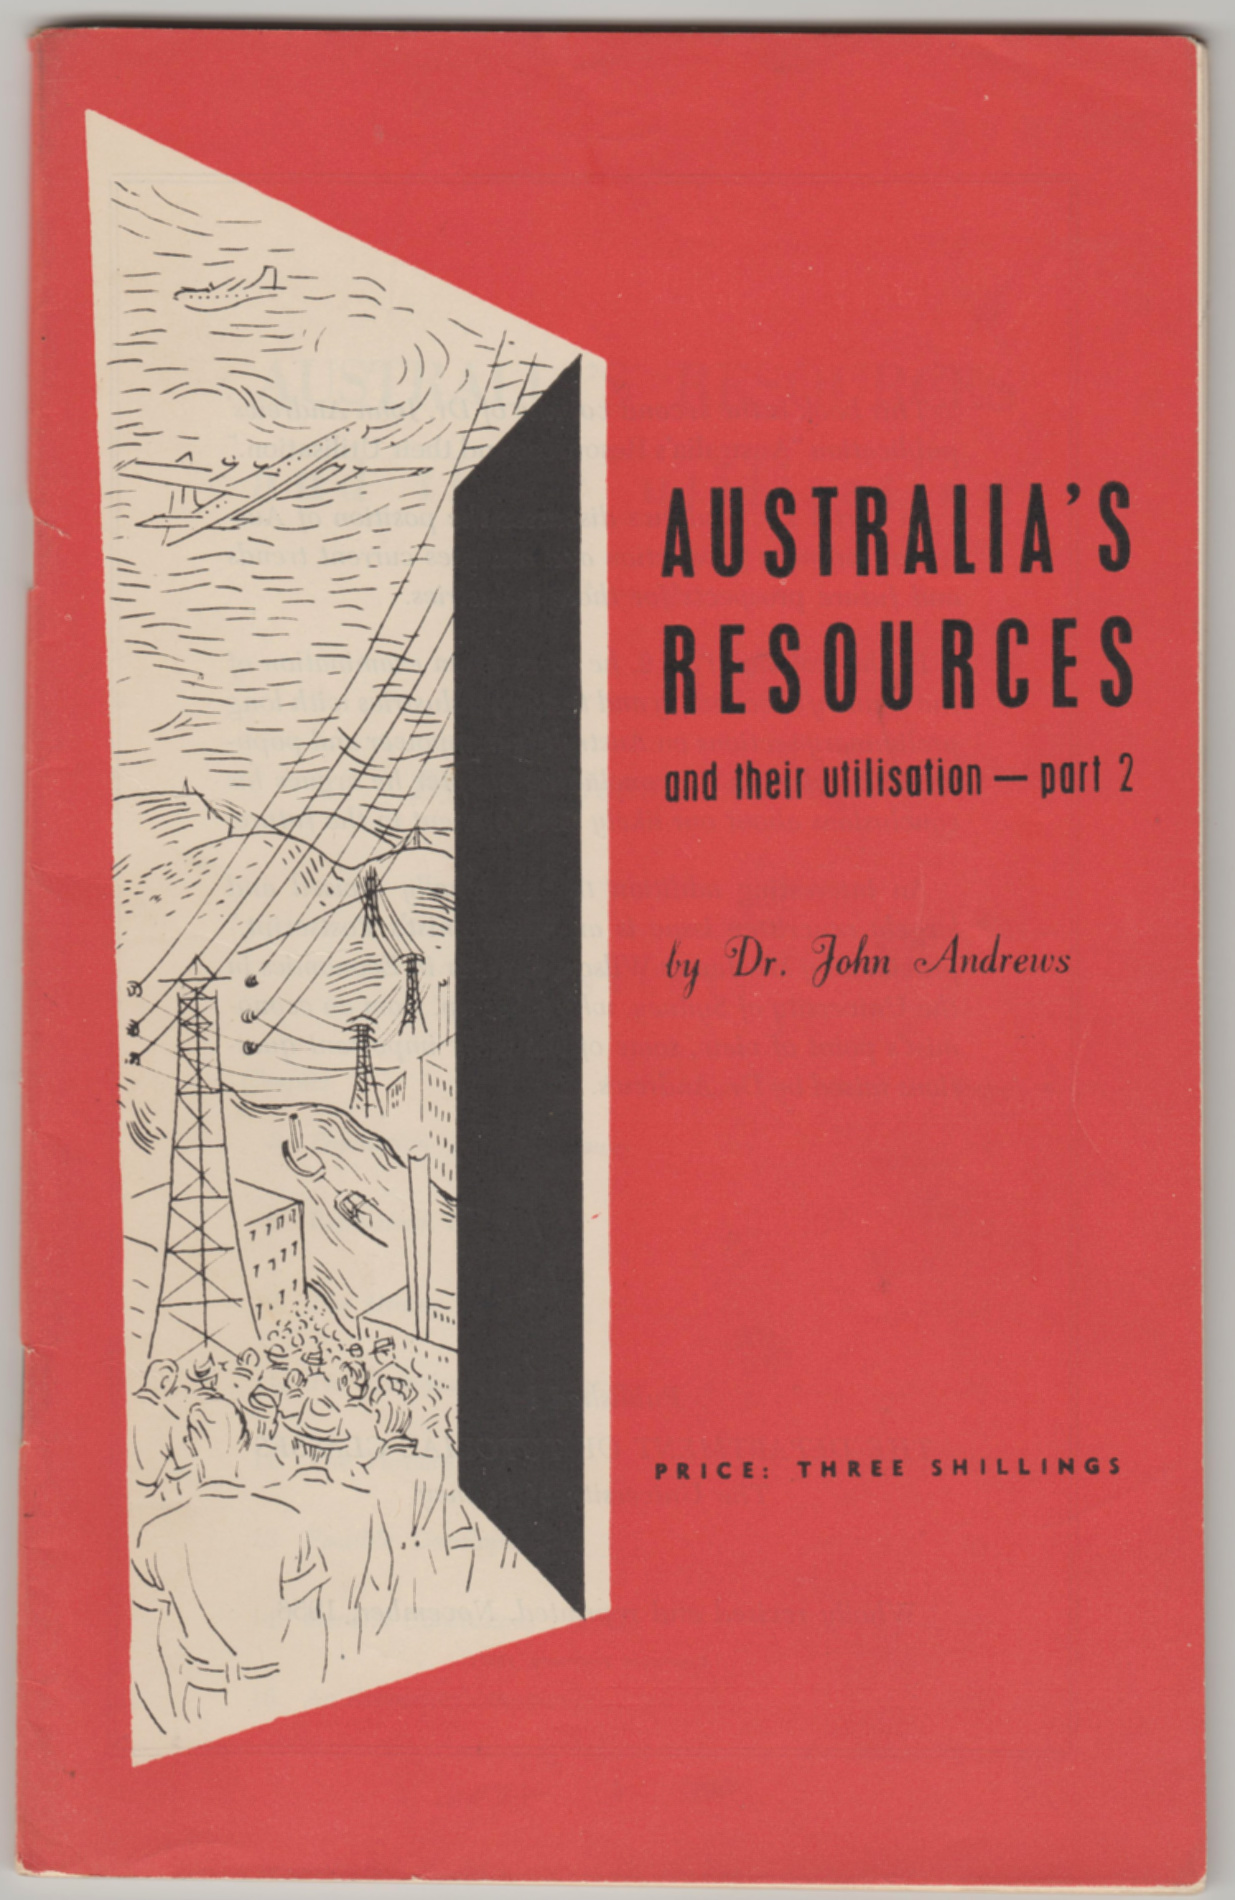 Image for AUSTRALIA'S RESOURCES and Their Utilisation - Part 2